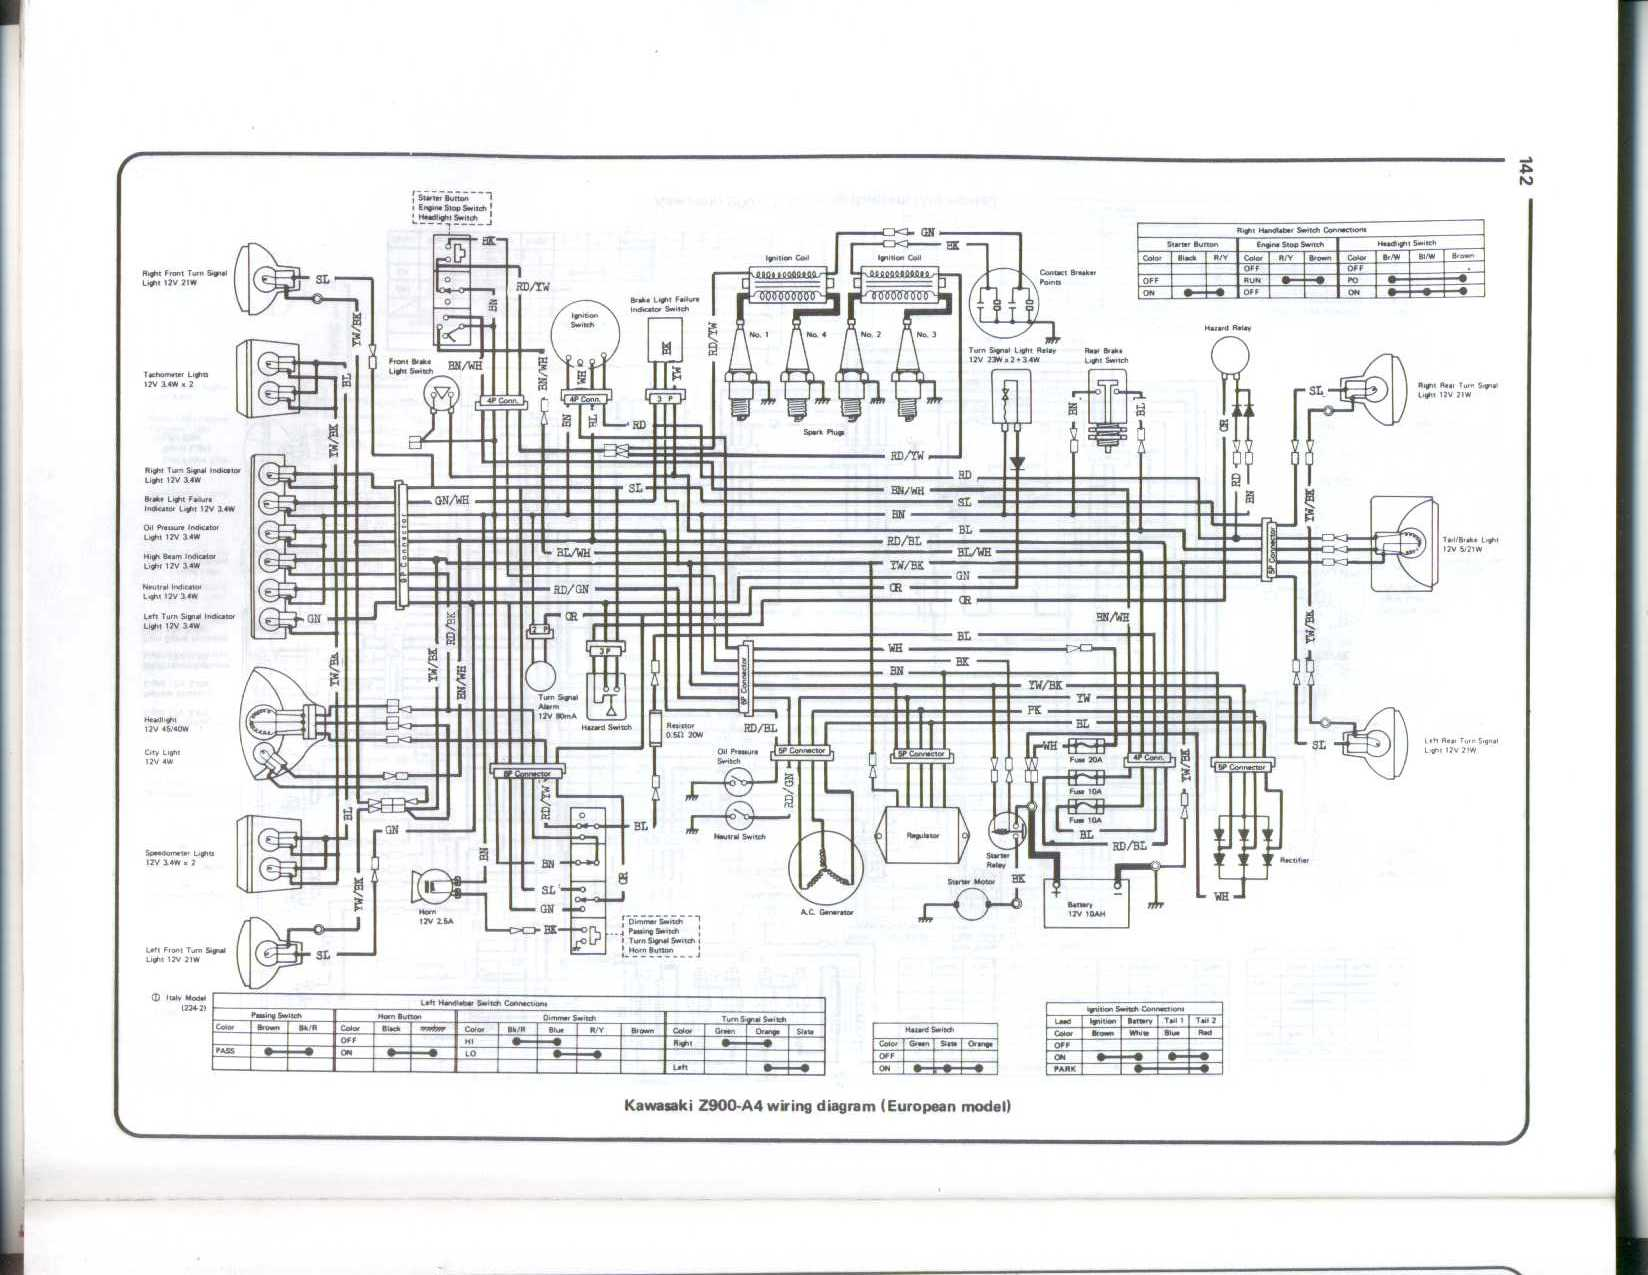 kawasaki kz1000 wiring diagram wiring diagrams value kz1000 fuse diagram wiring diagram centre kawasaki kz1000 wiring diagram